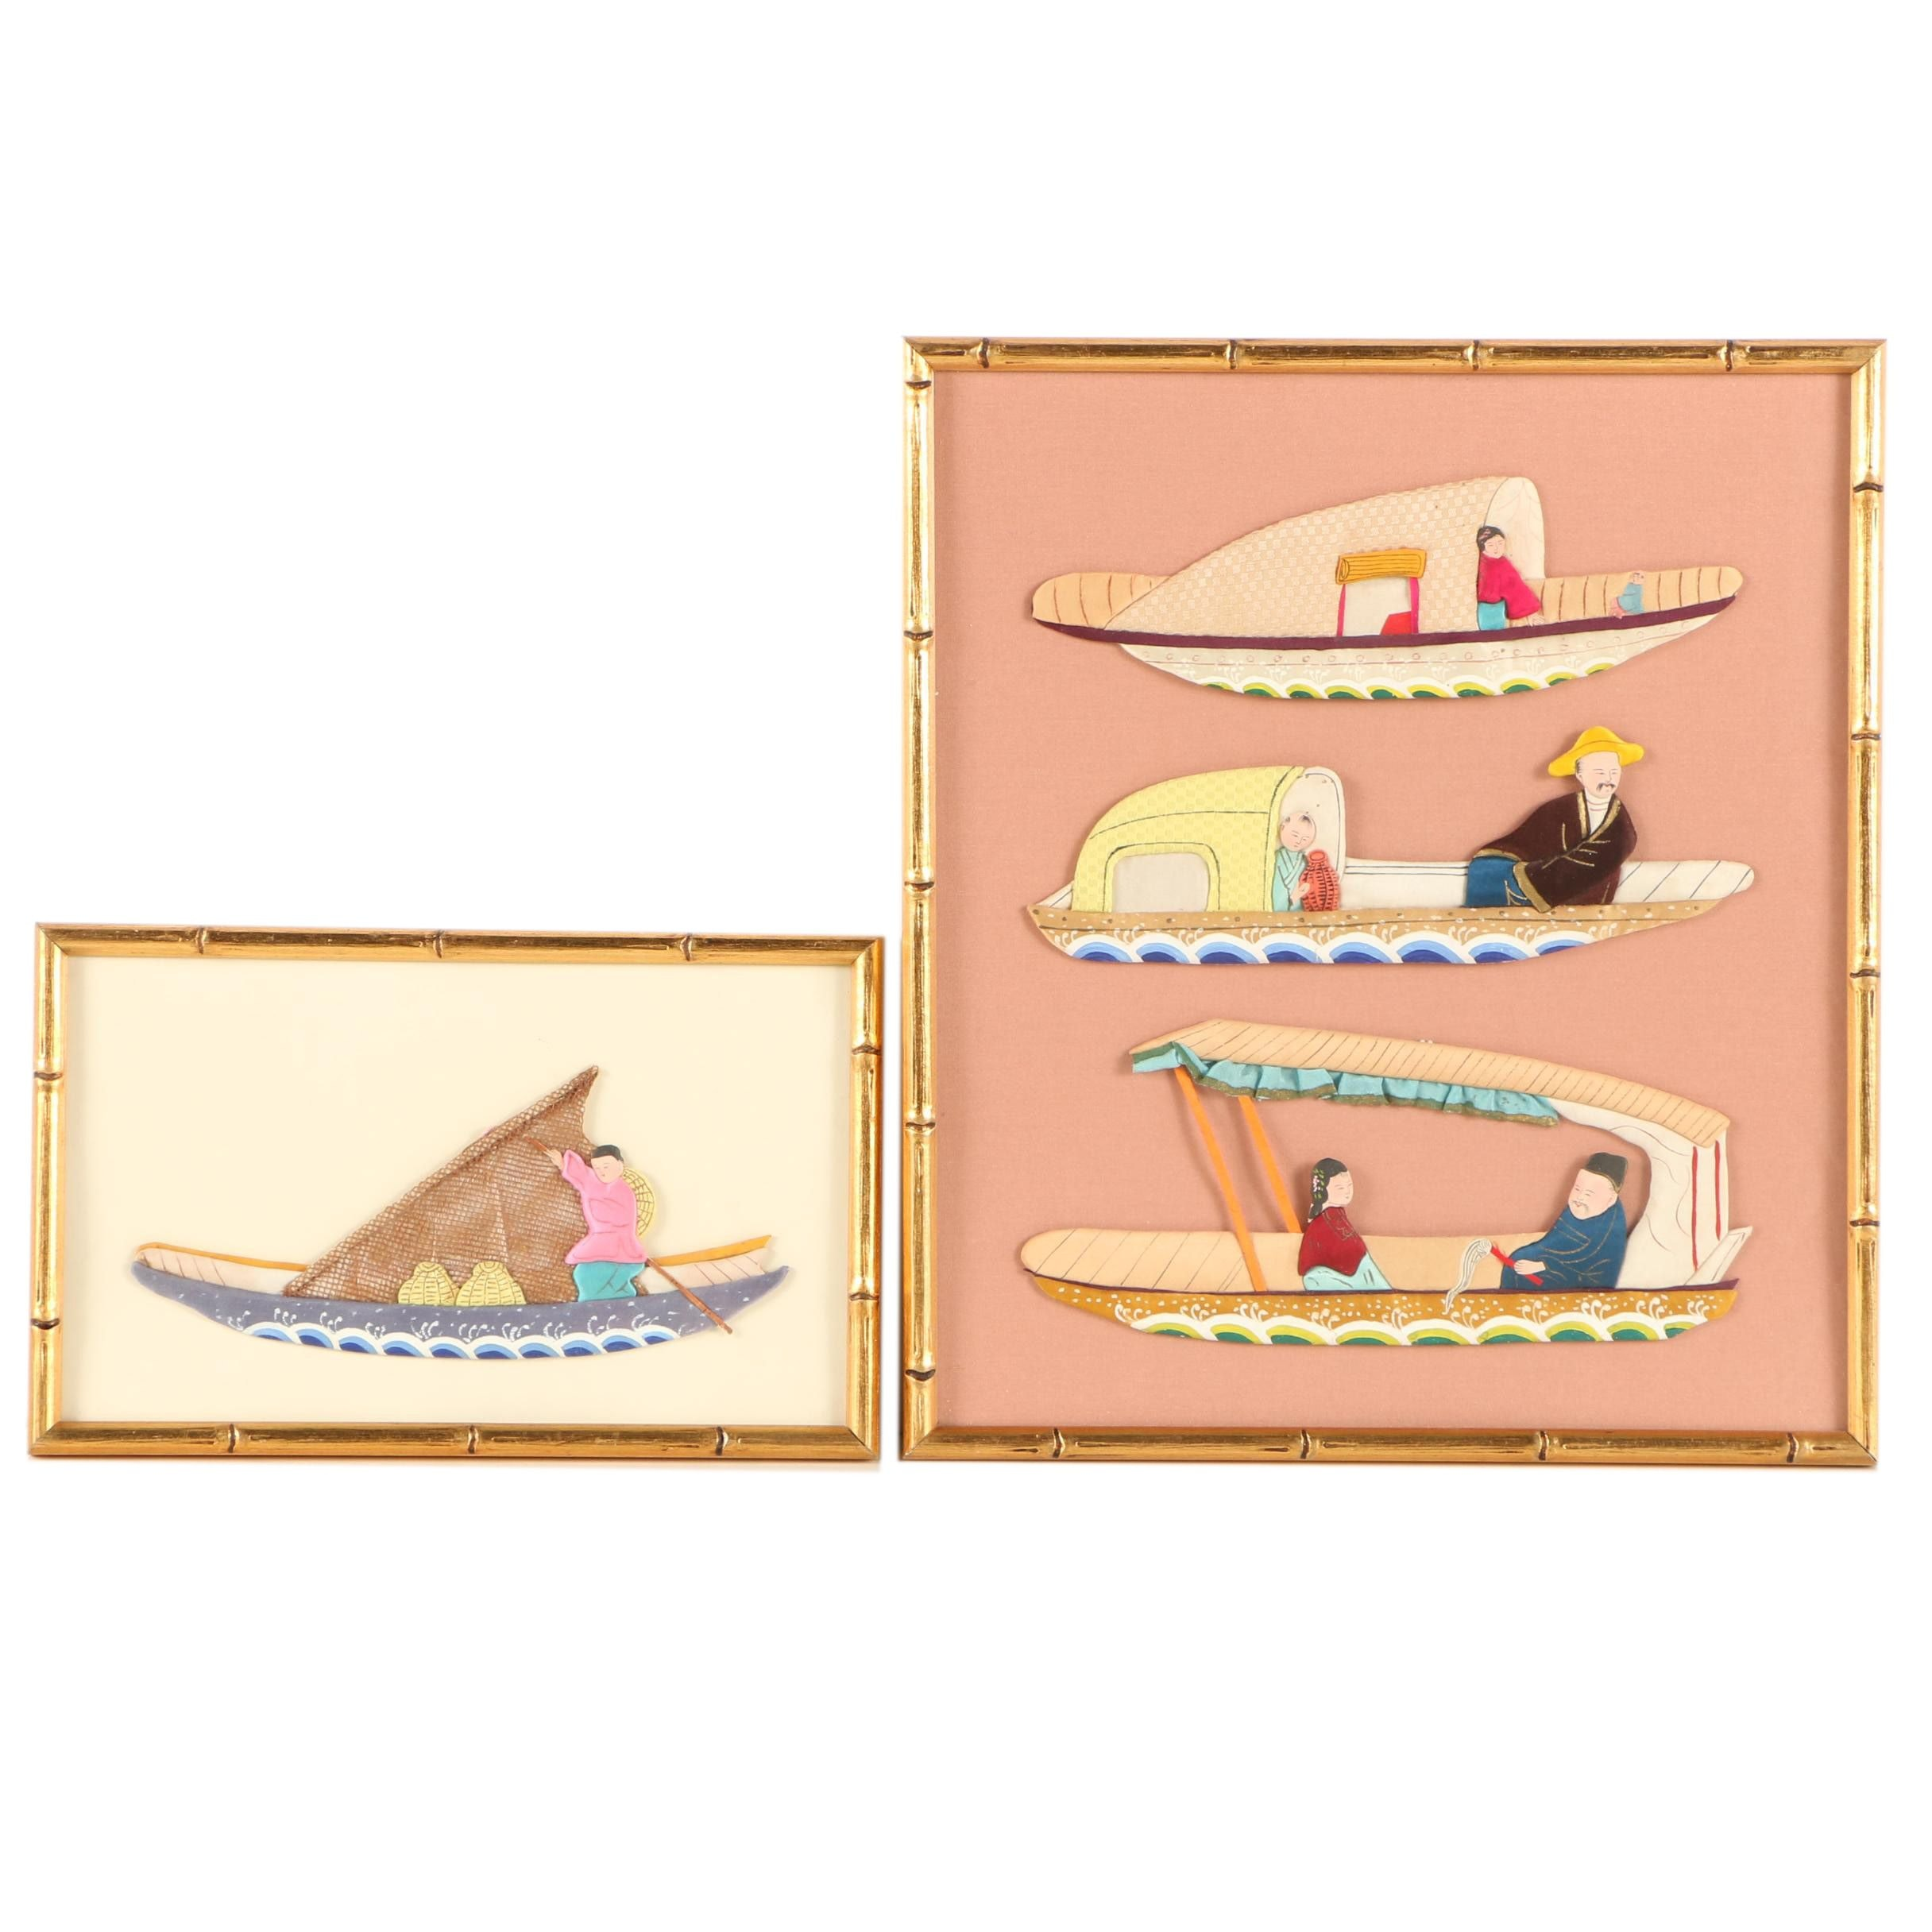 East Asian Hand-Painted Silk Boats